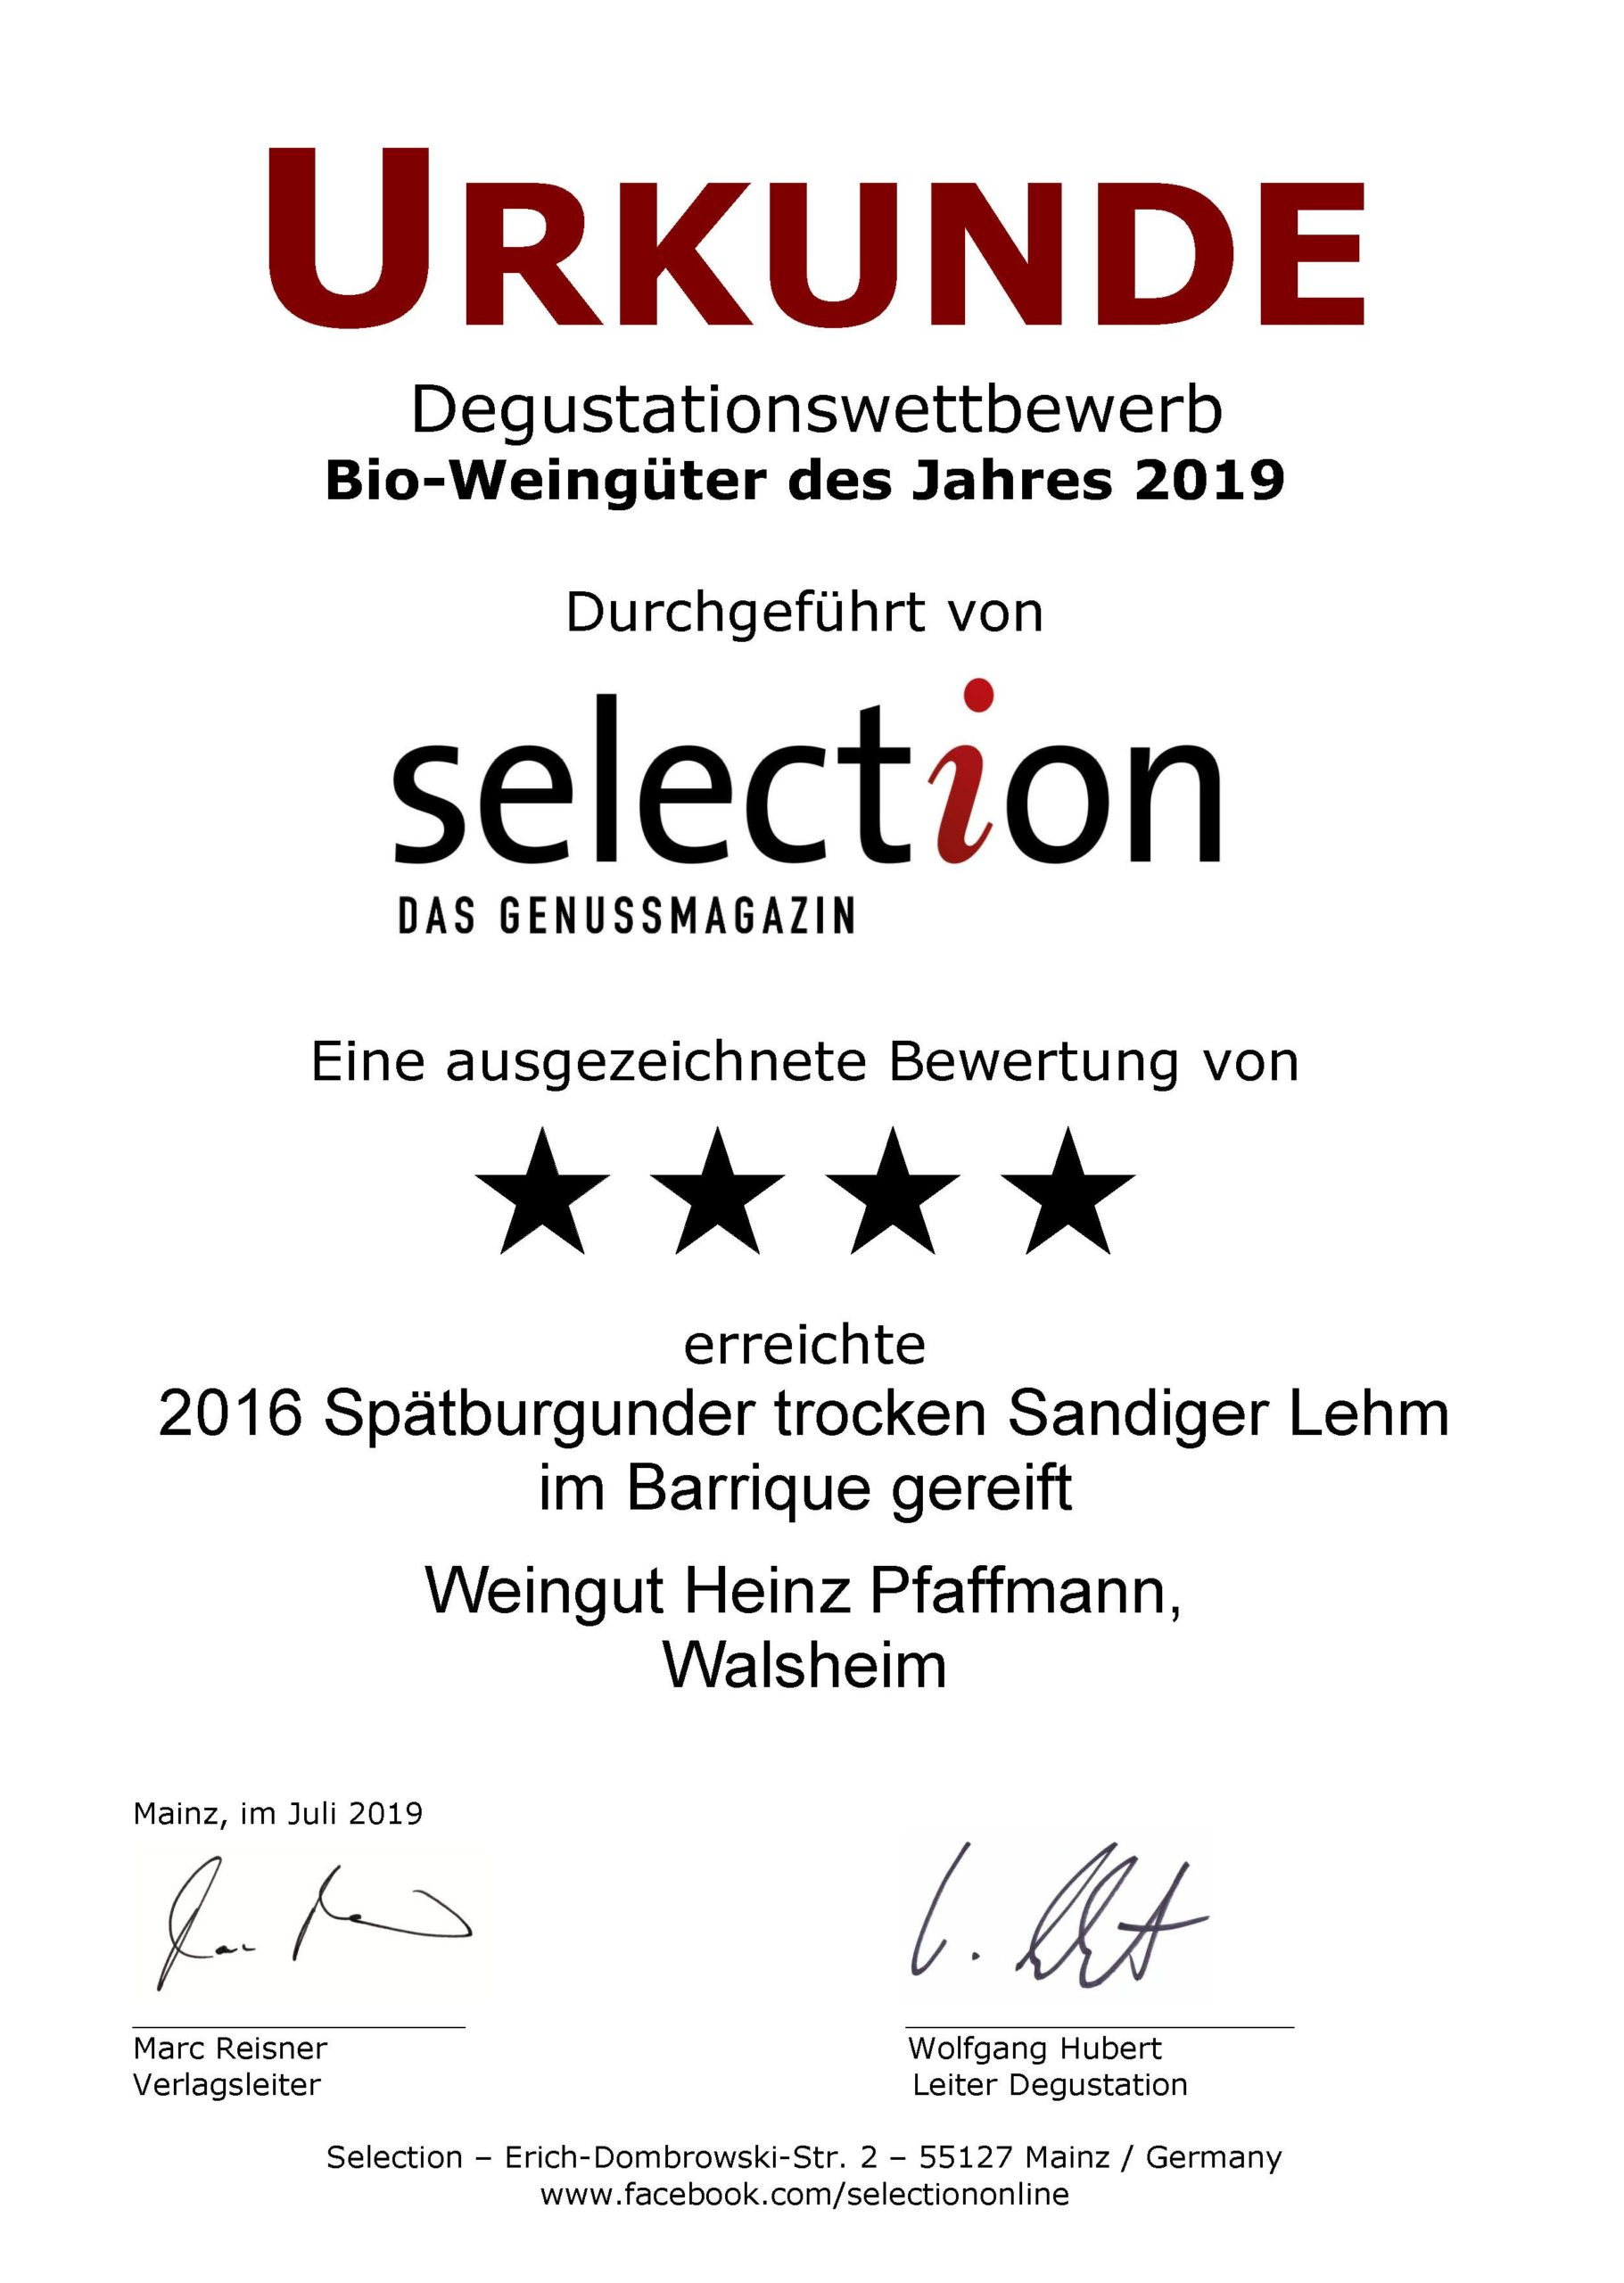 Selection Weingenuss Magazin 4 Sterne